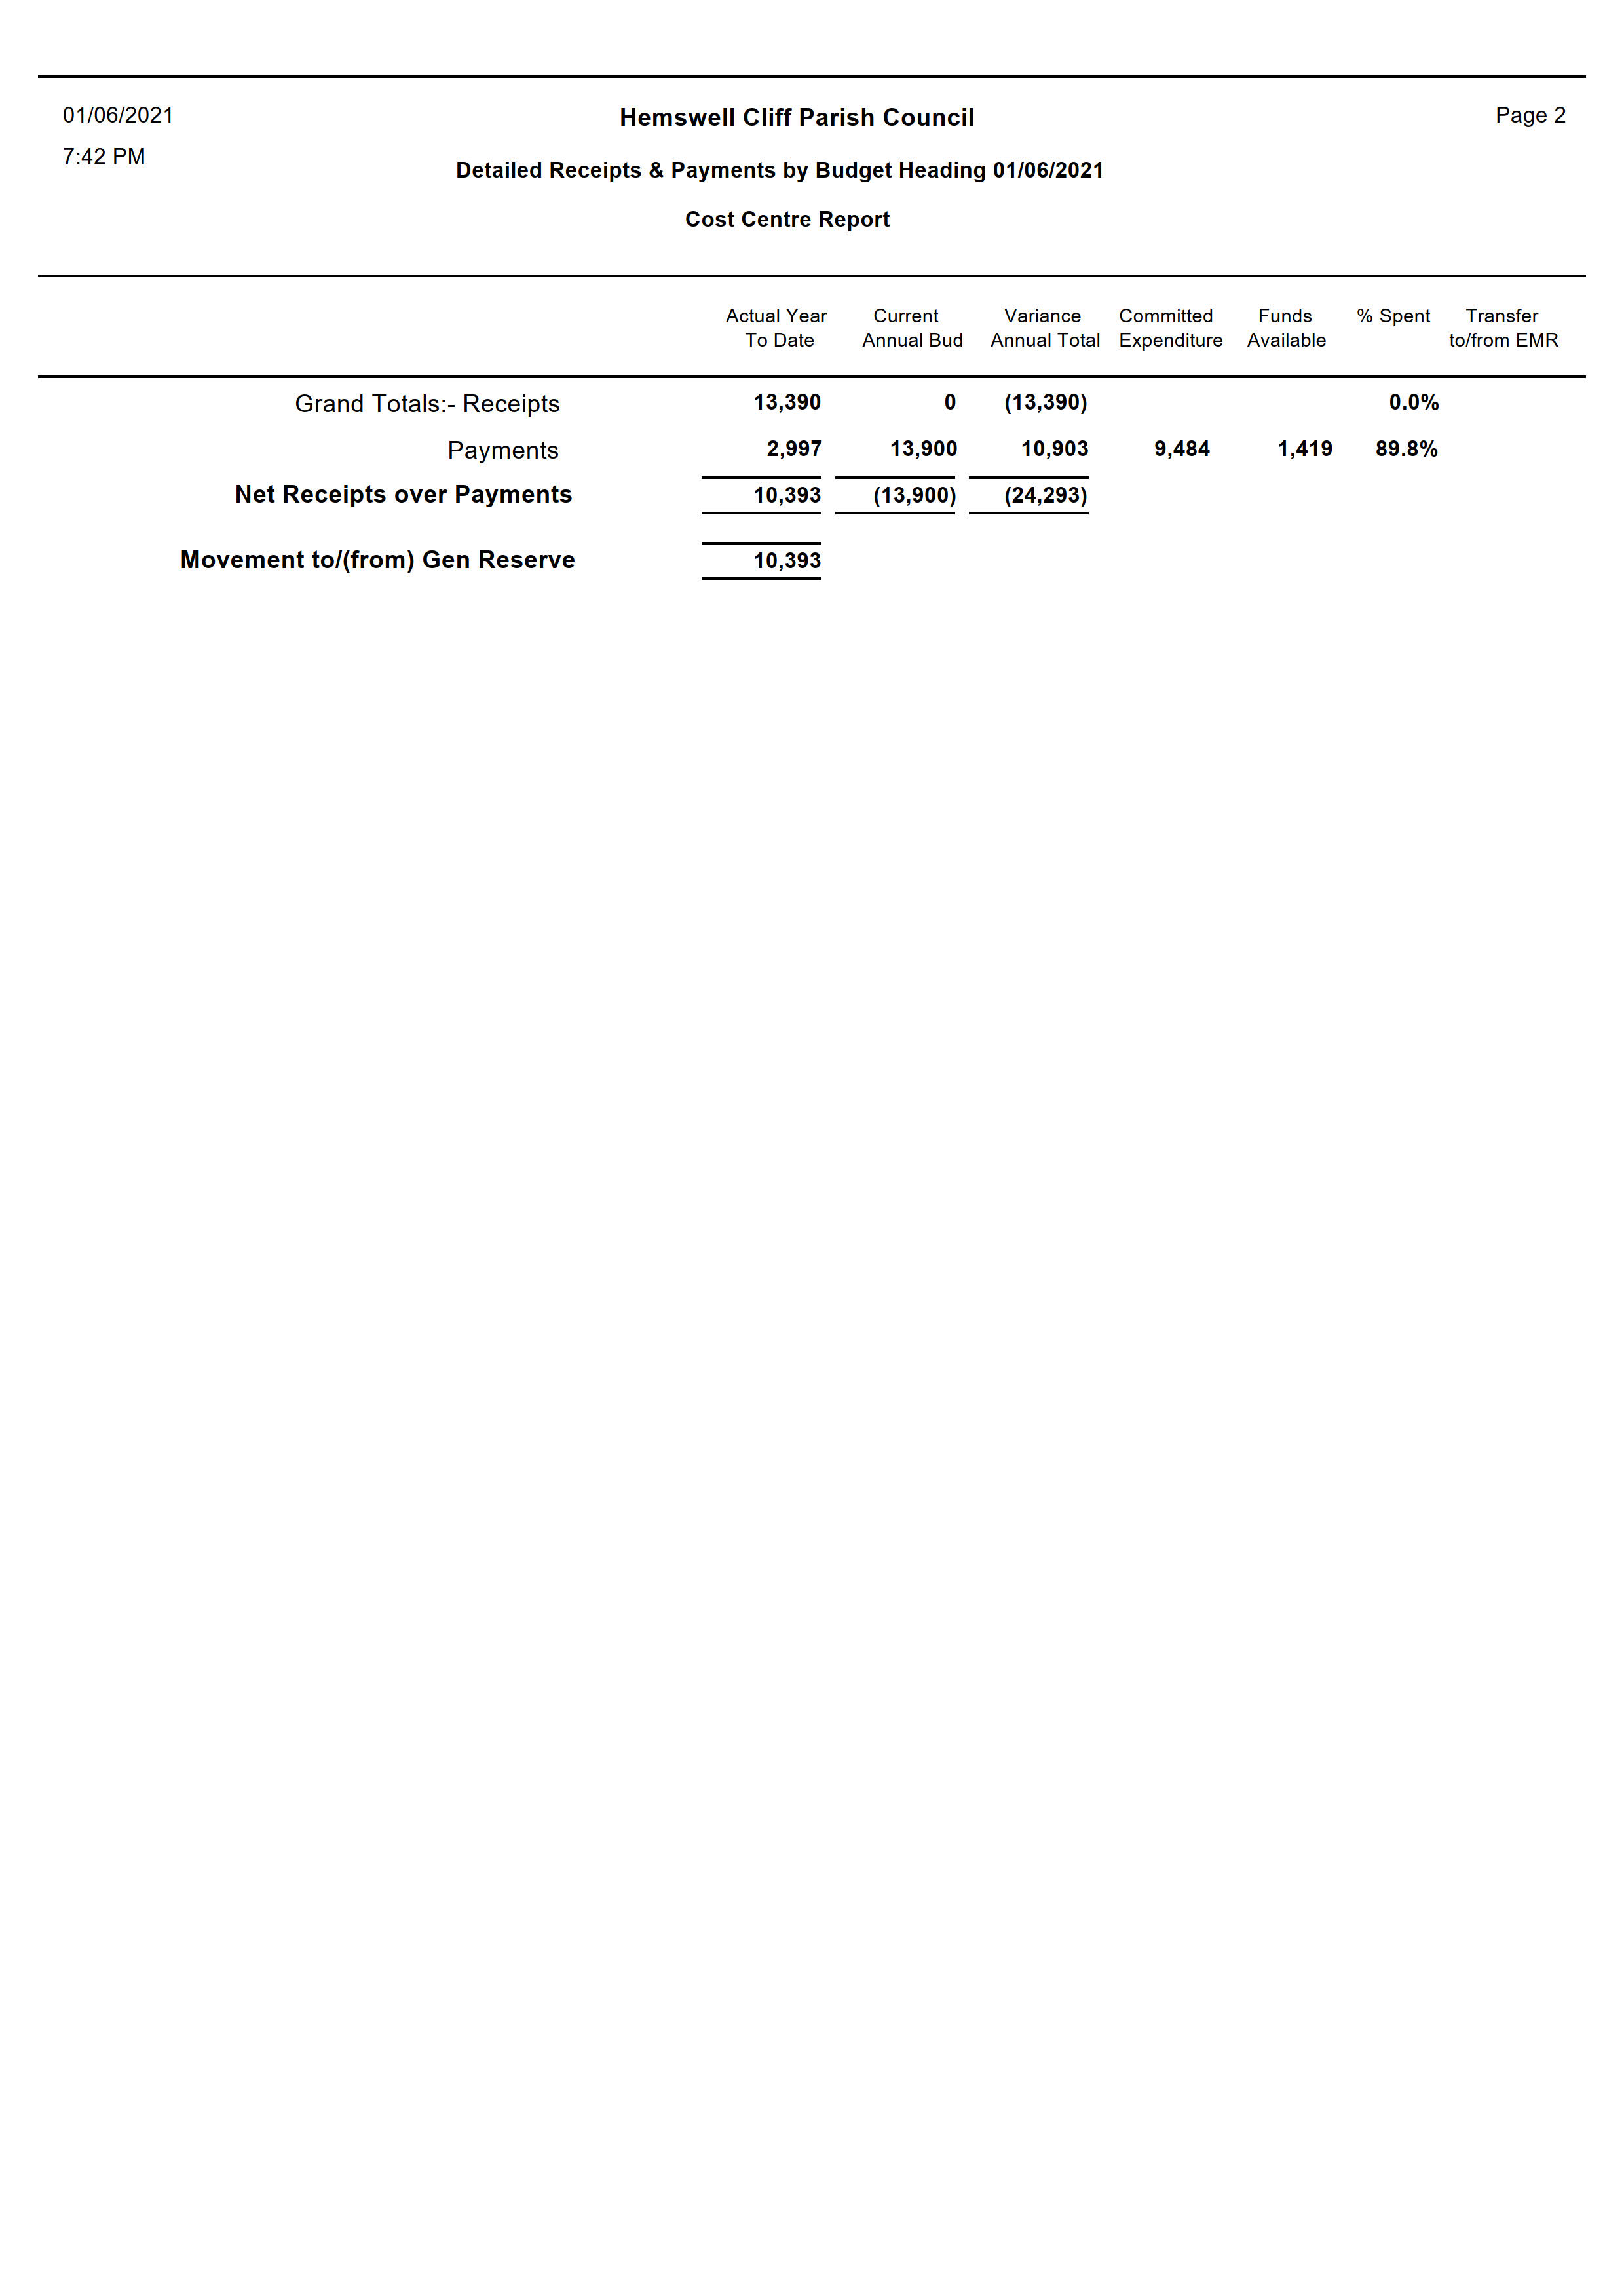 Detailed_Receipts___Payments_by_Budget_Heading_01_06_2021_2.jpg